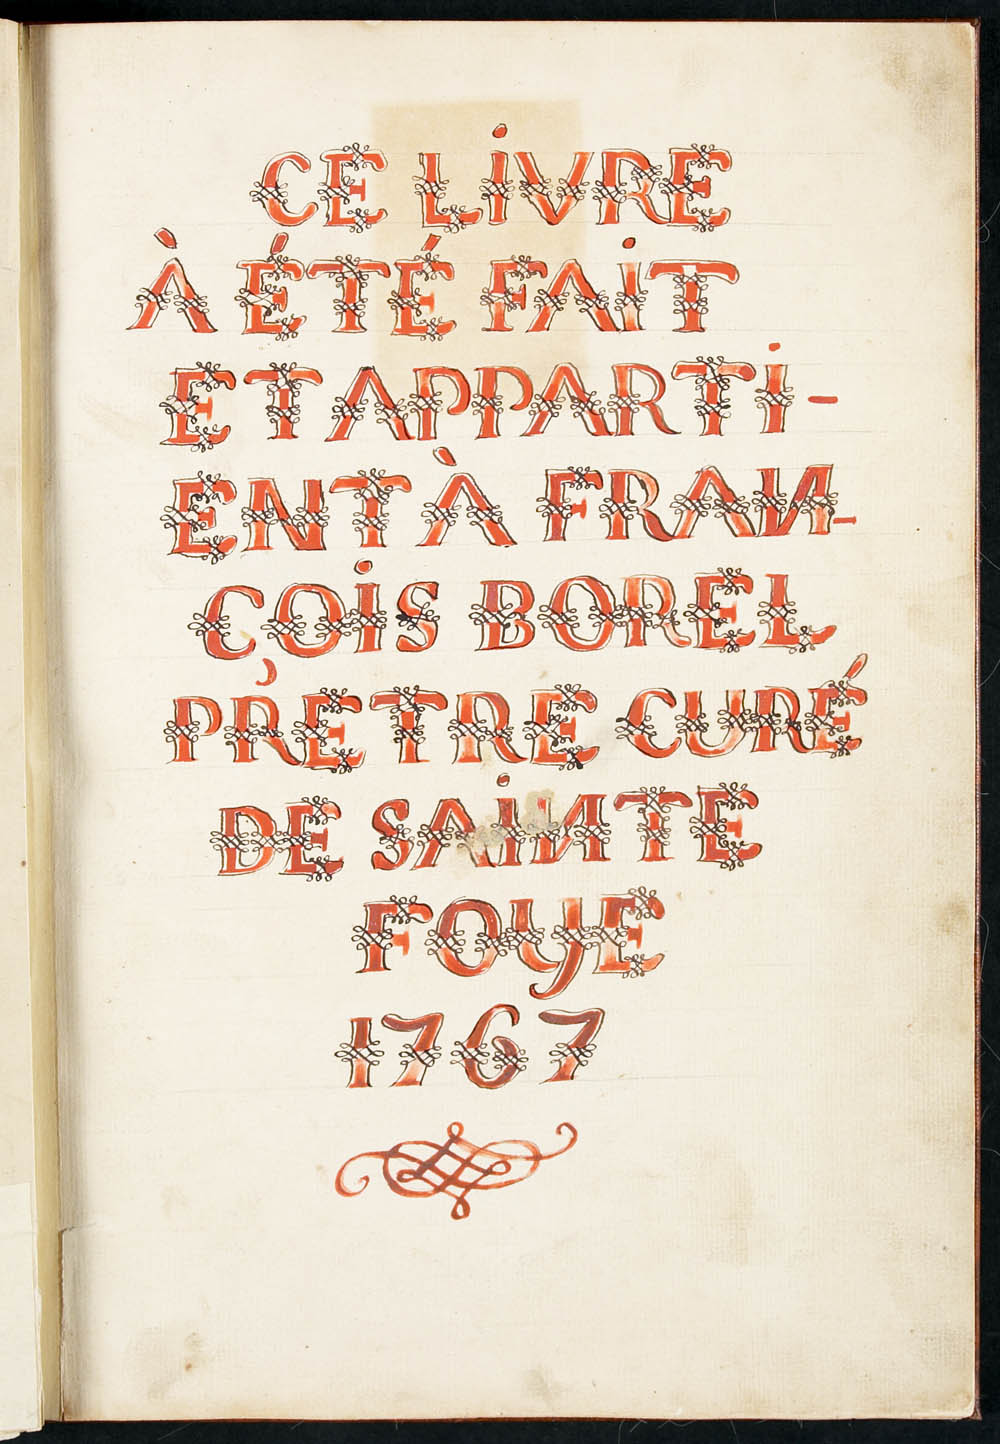 Book of Gregorian chant, François-Xavier Borel, 1767, CA ANC MG18-E21